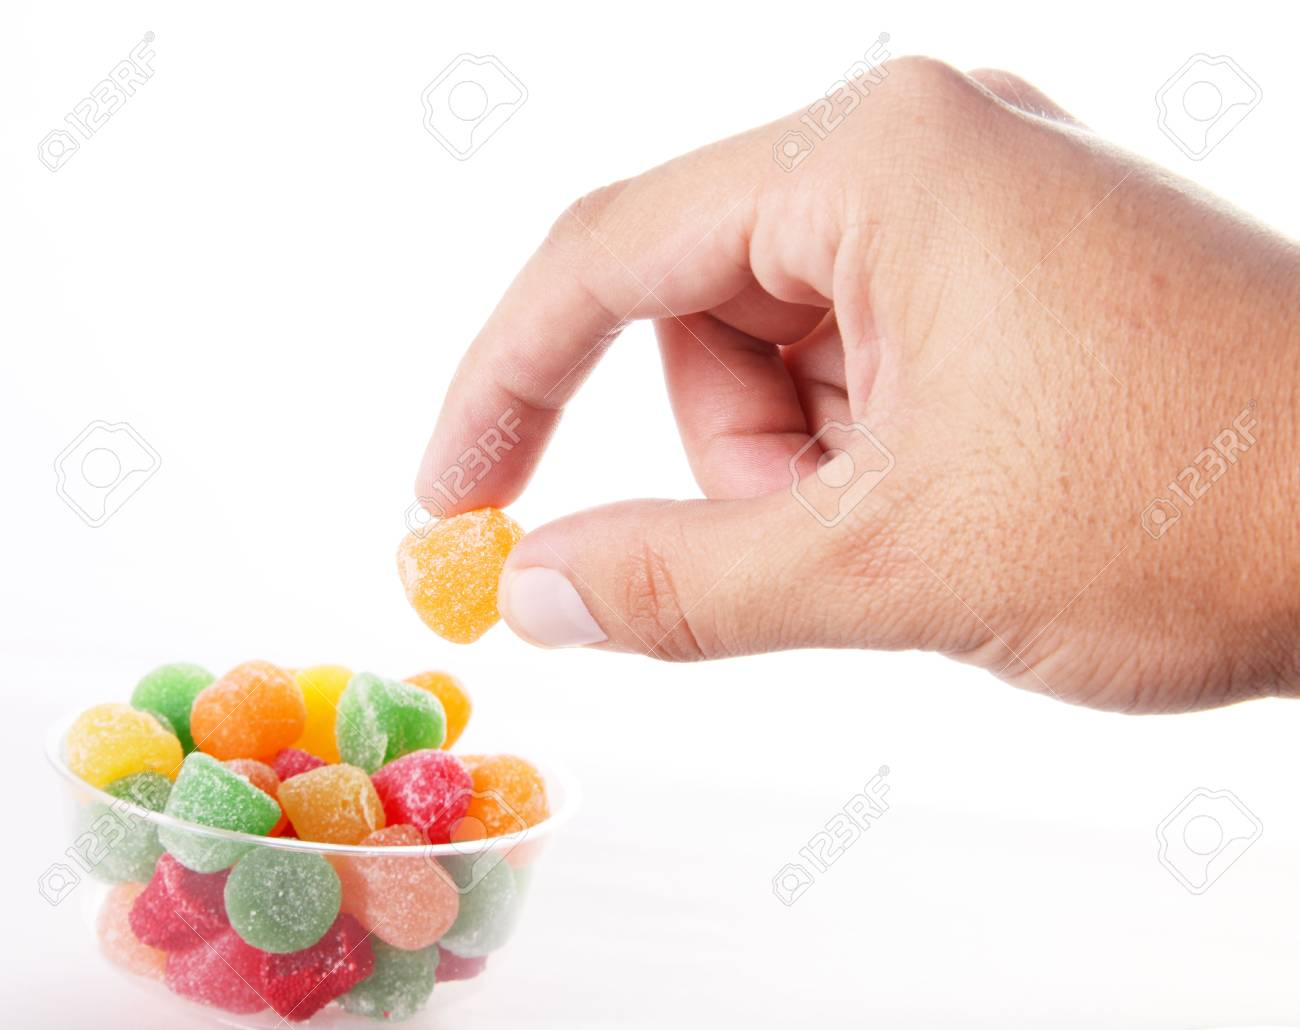 hand taking a candy over white background Stock Photo - 6582312